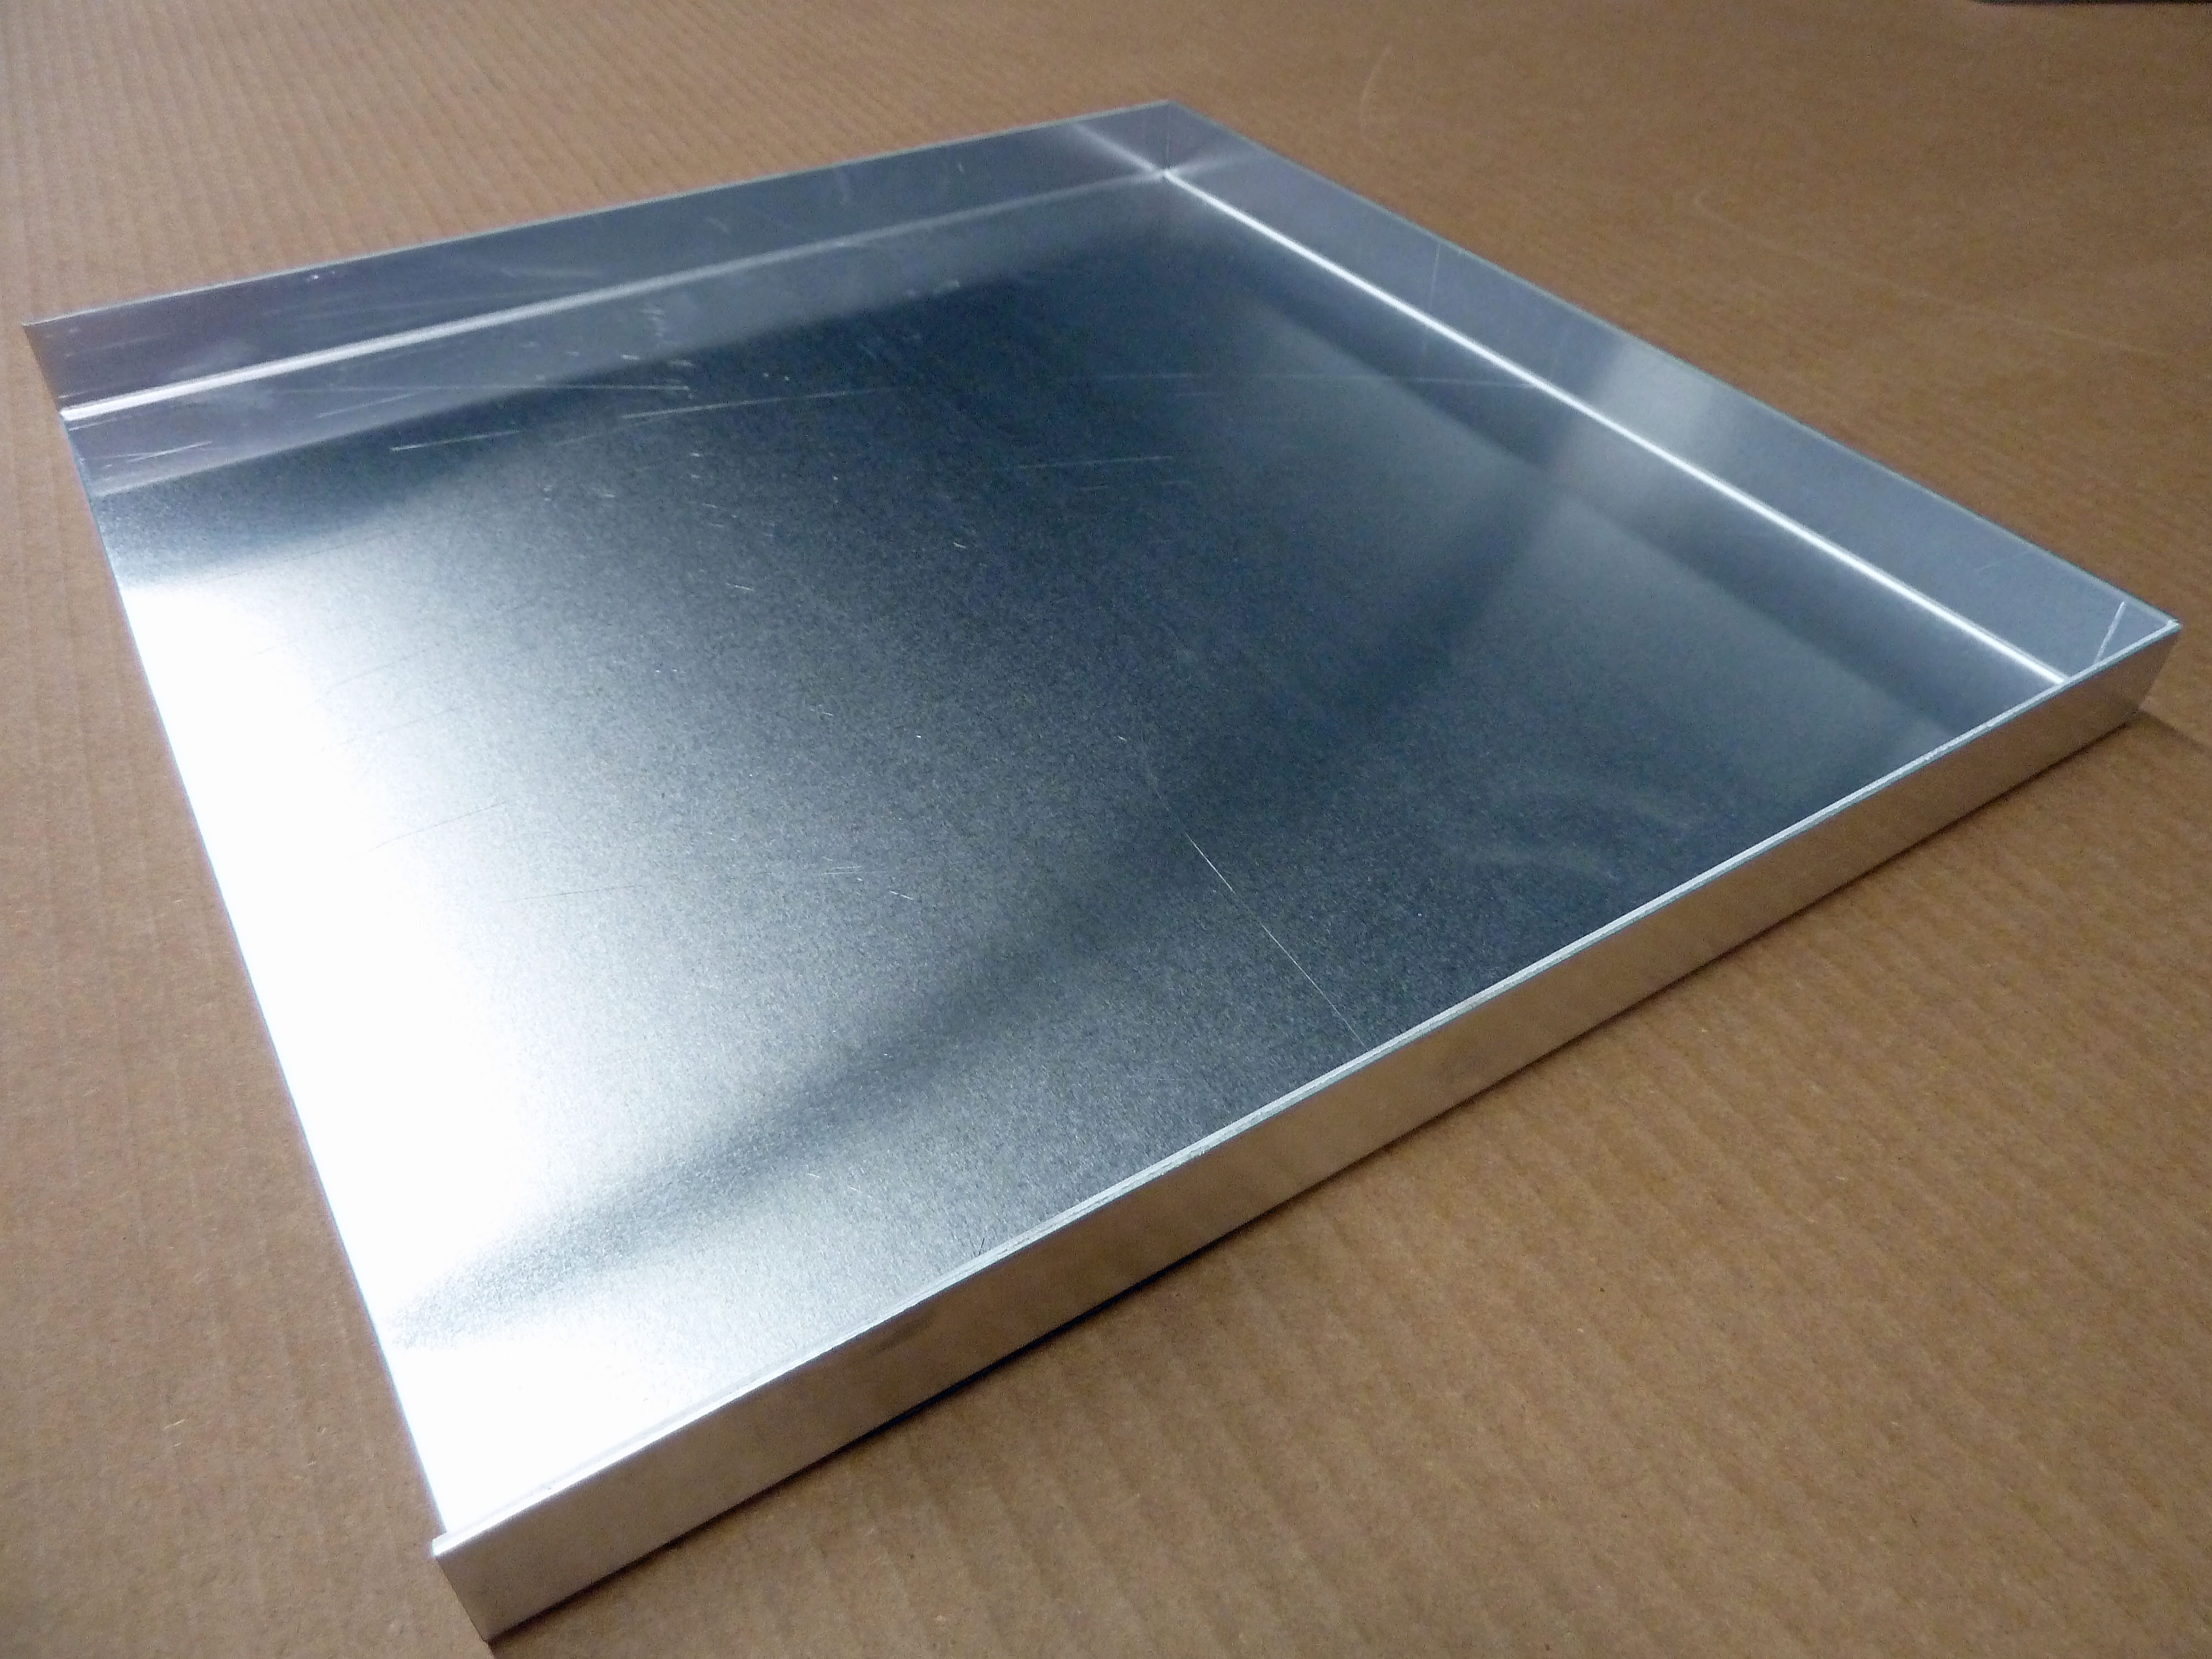 Fabrication Product 187 Midwest Sheet Metal